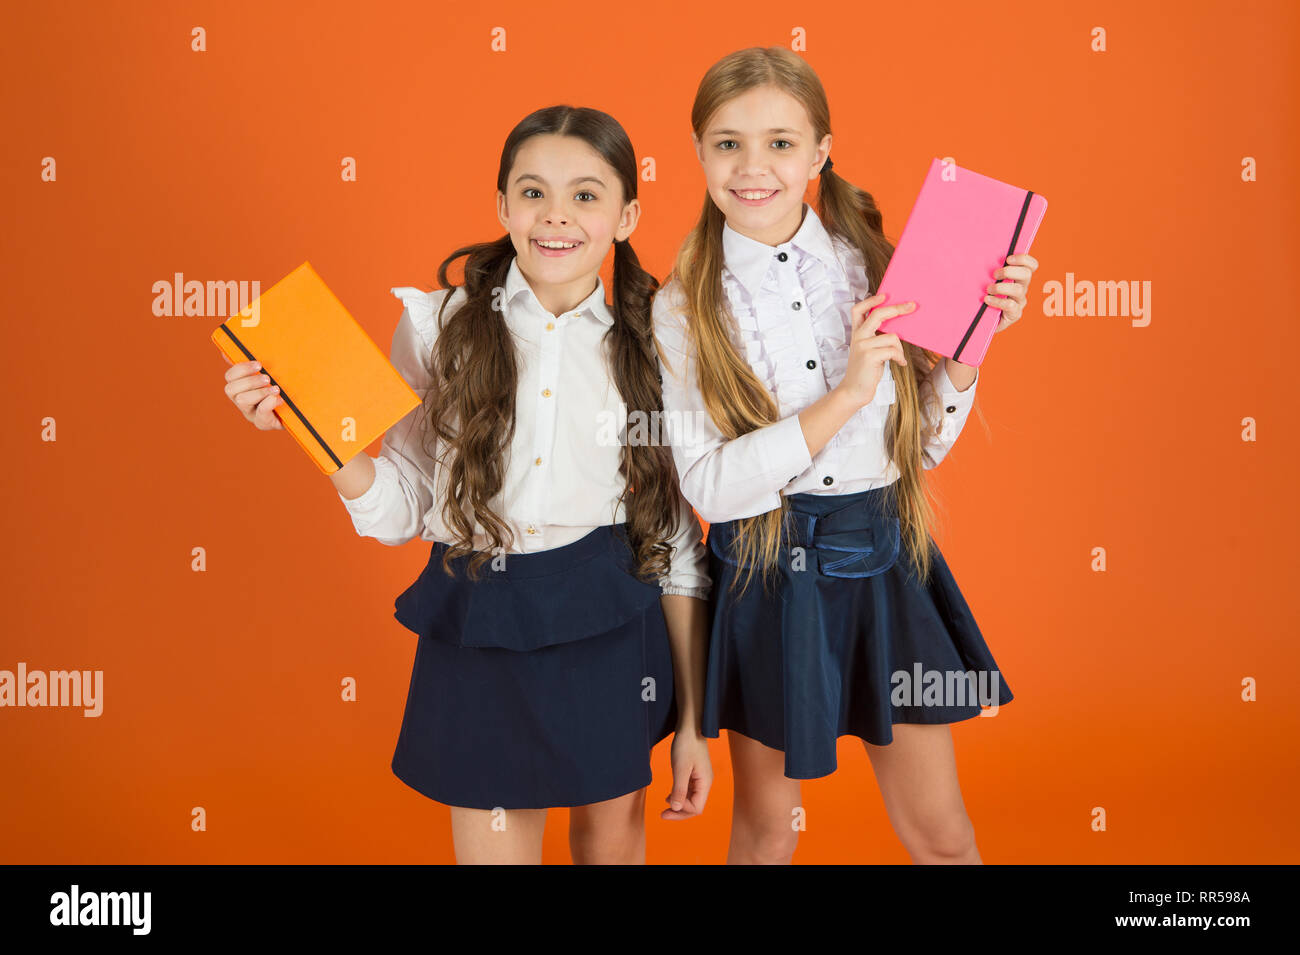 Smart and adorable. Cute schoolgirls holding lesson books. Little children with school diaries for making notes. School children learn reading books. Small girls classmates with workbooks for writing. Stock Photo